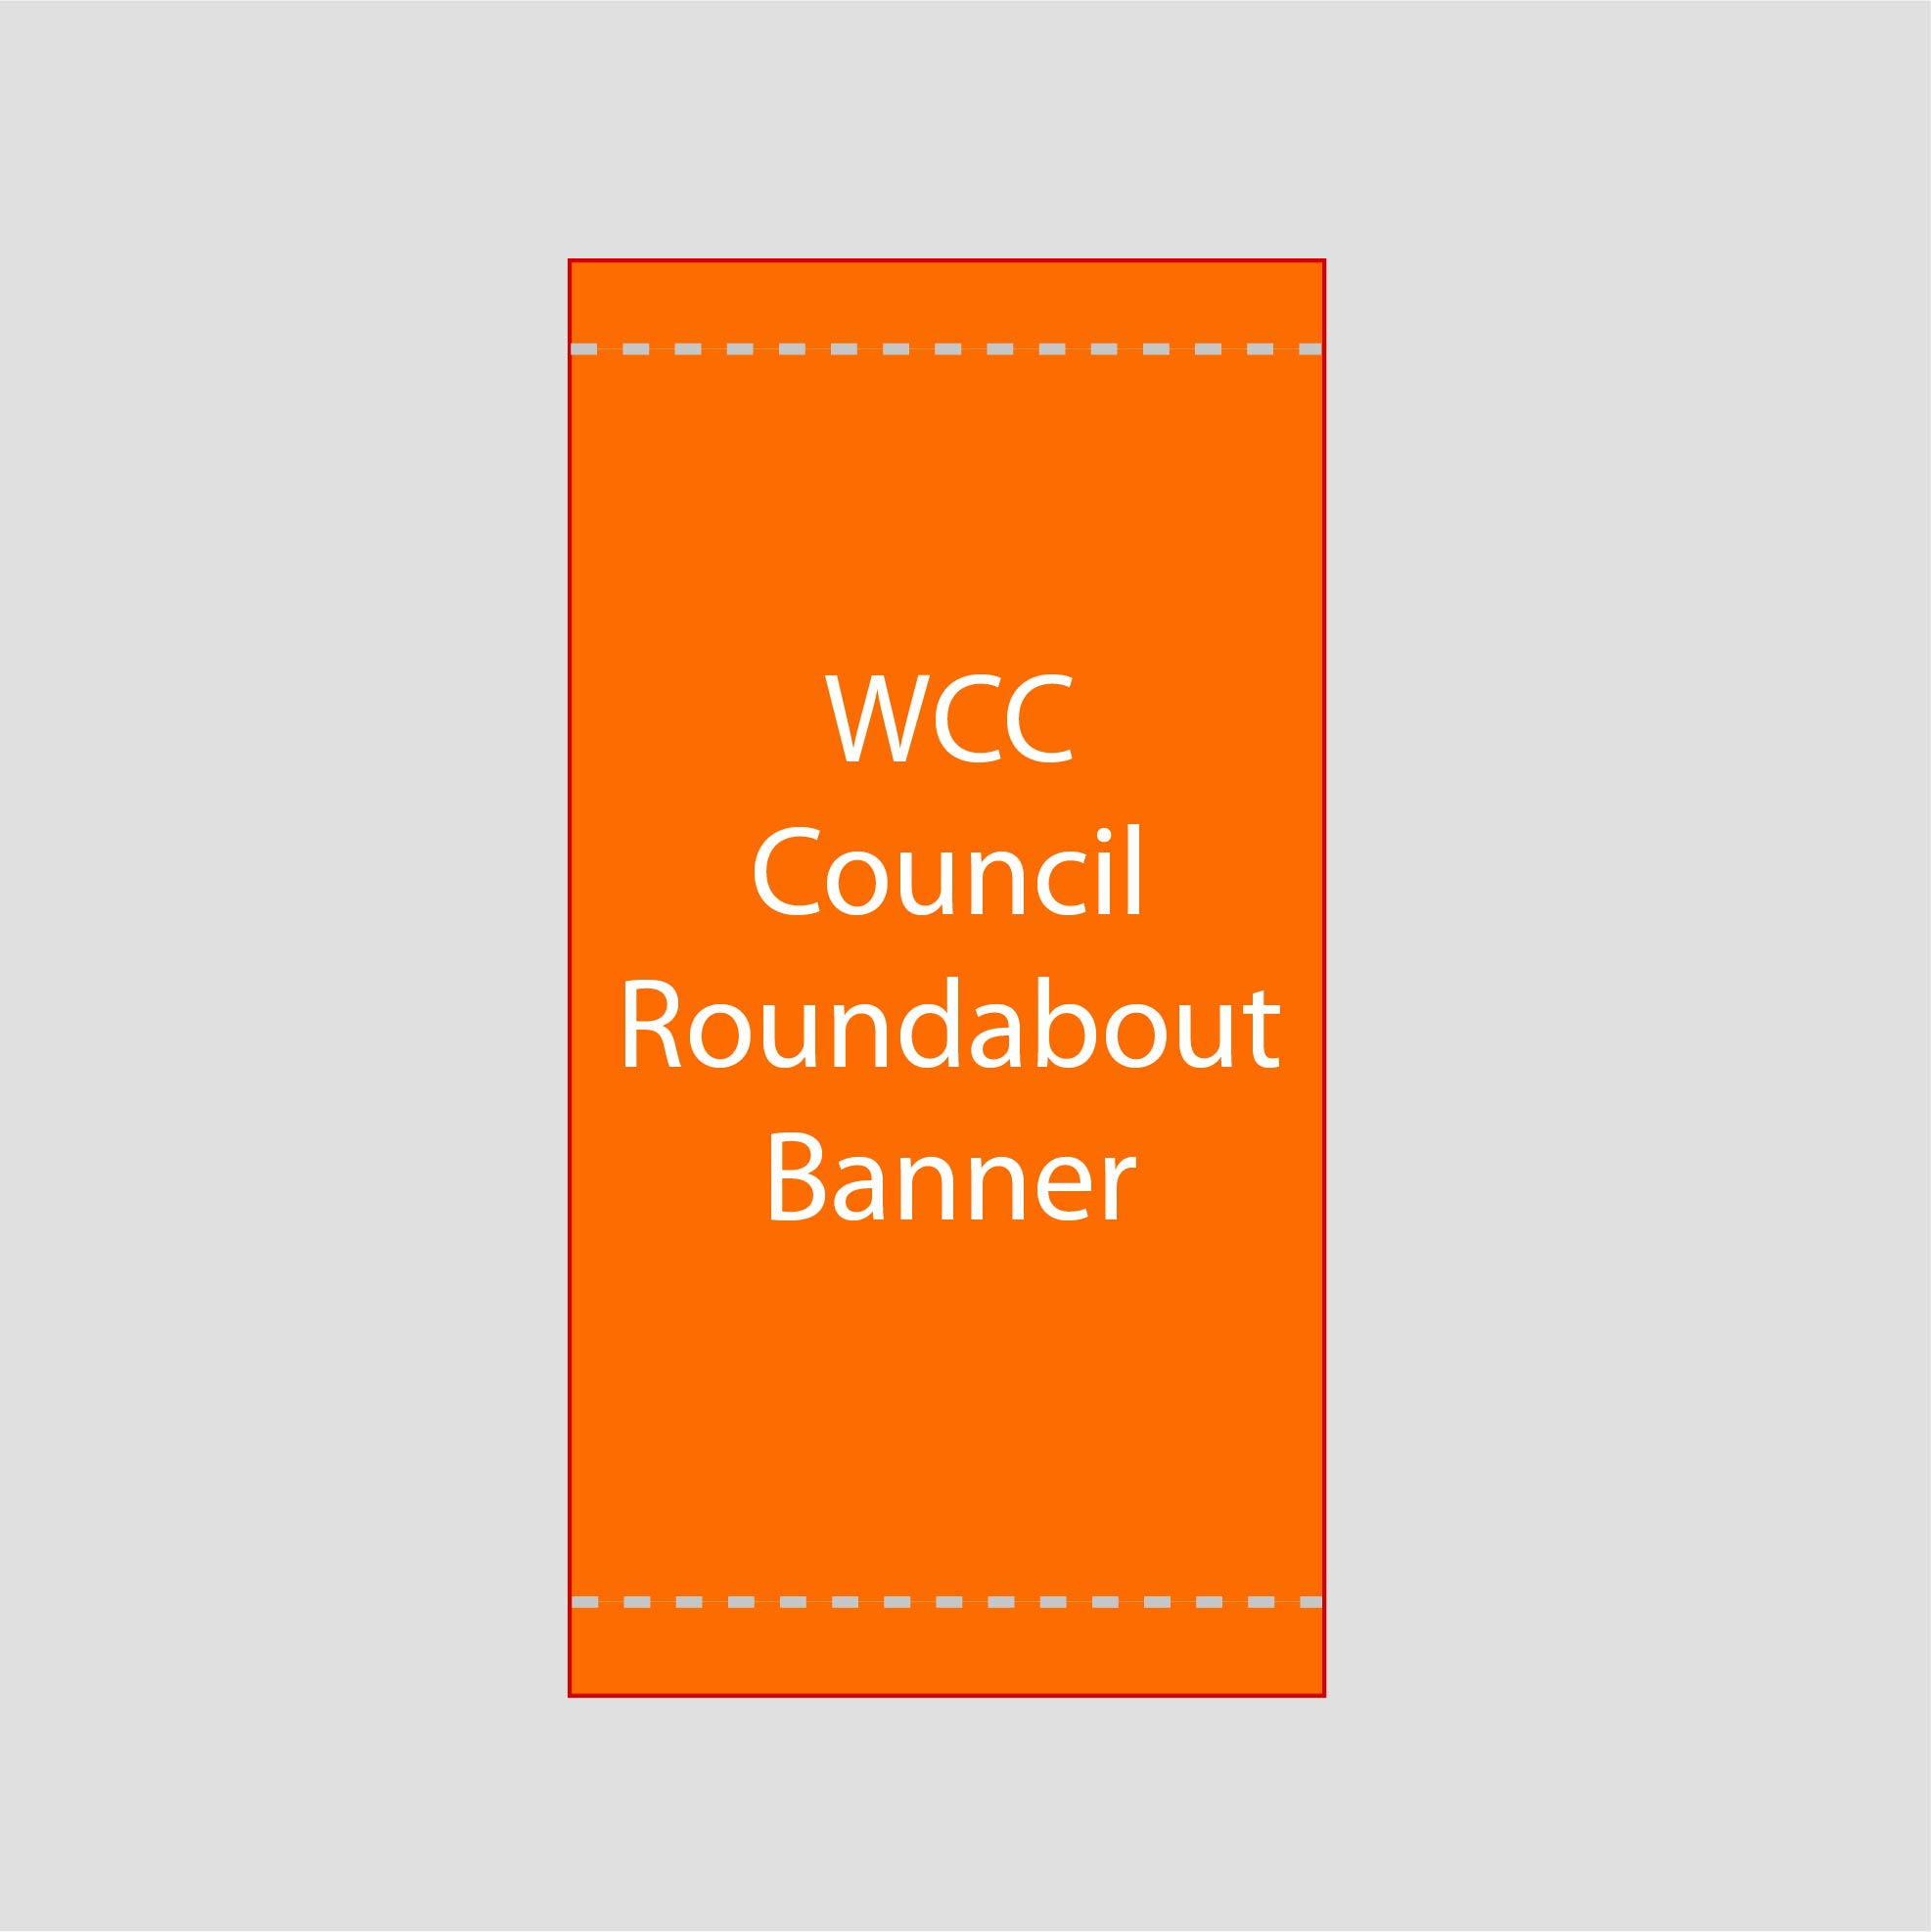 WCC Roundabout Banner